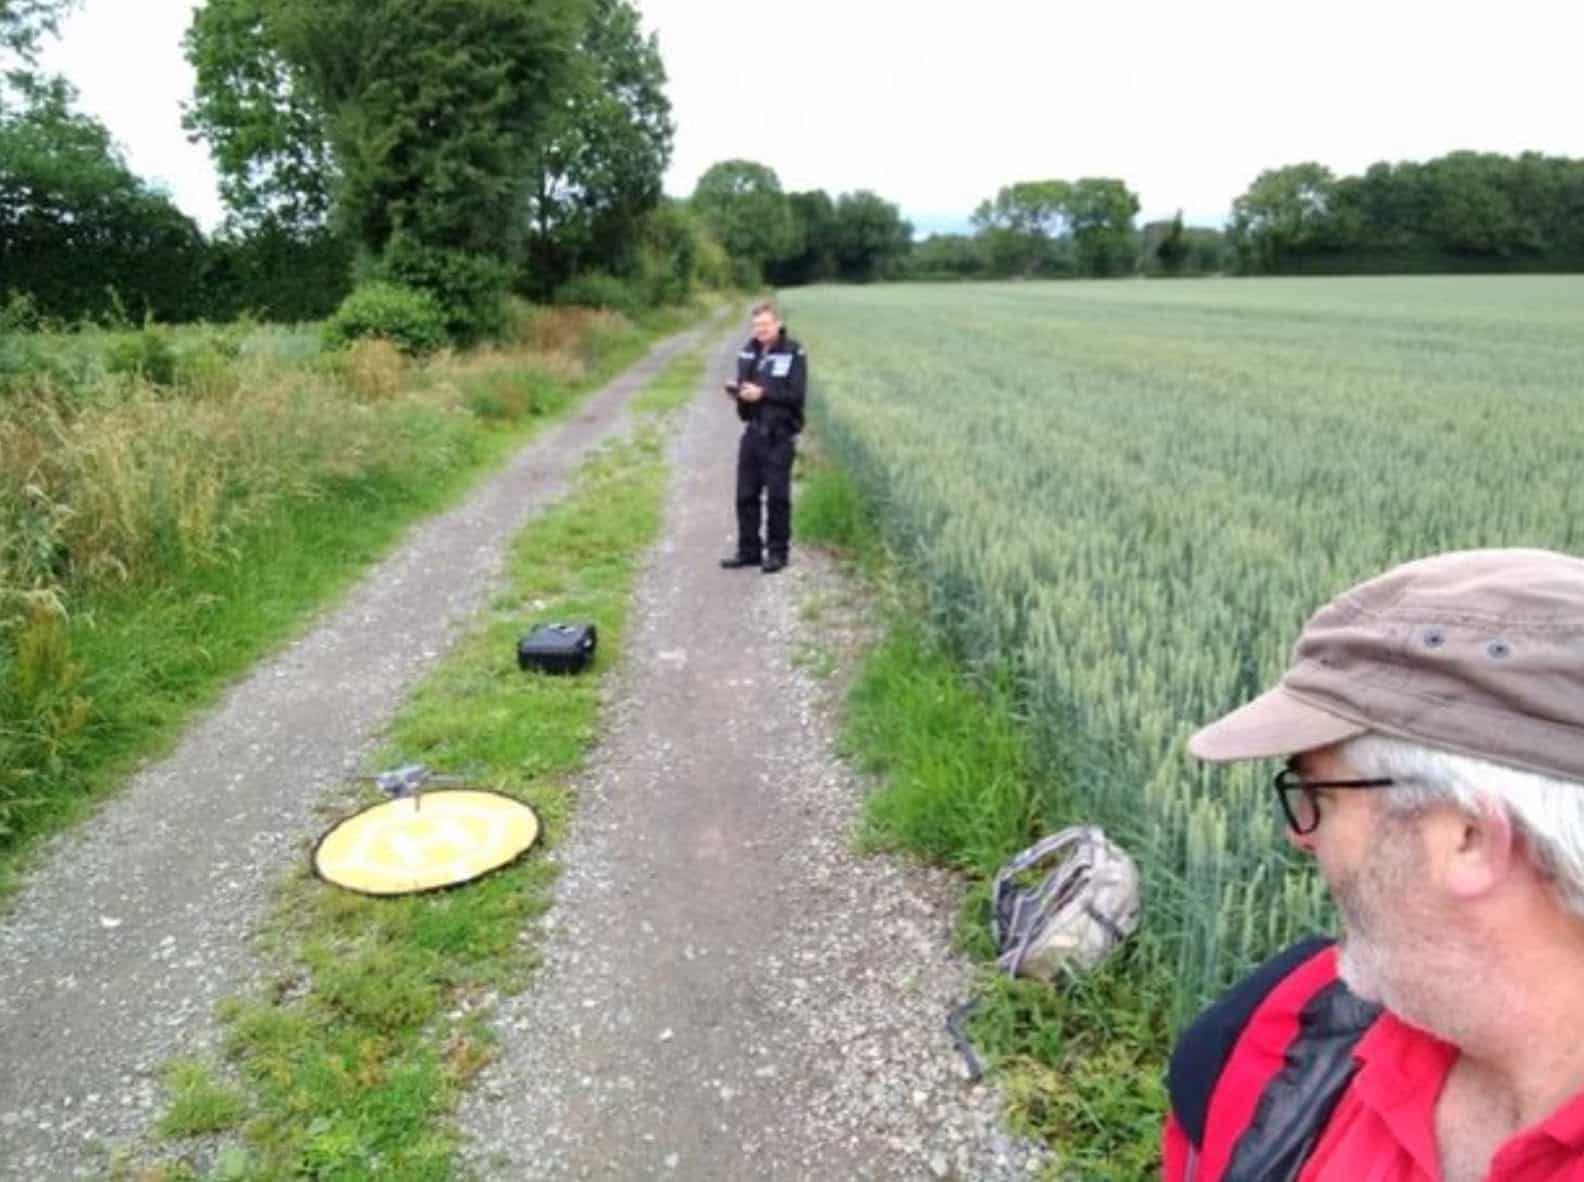 Another life saved with help from a drone flown by volunteer Search and Rescue team